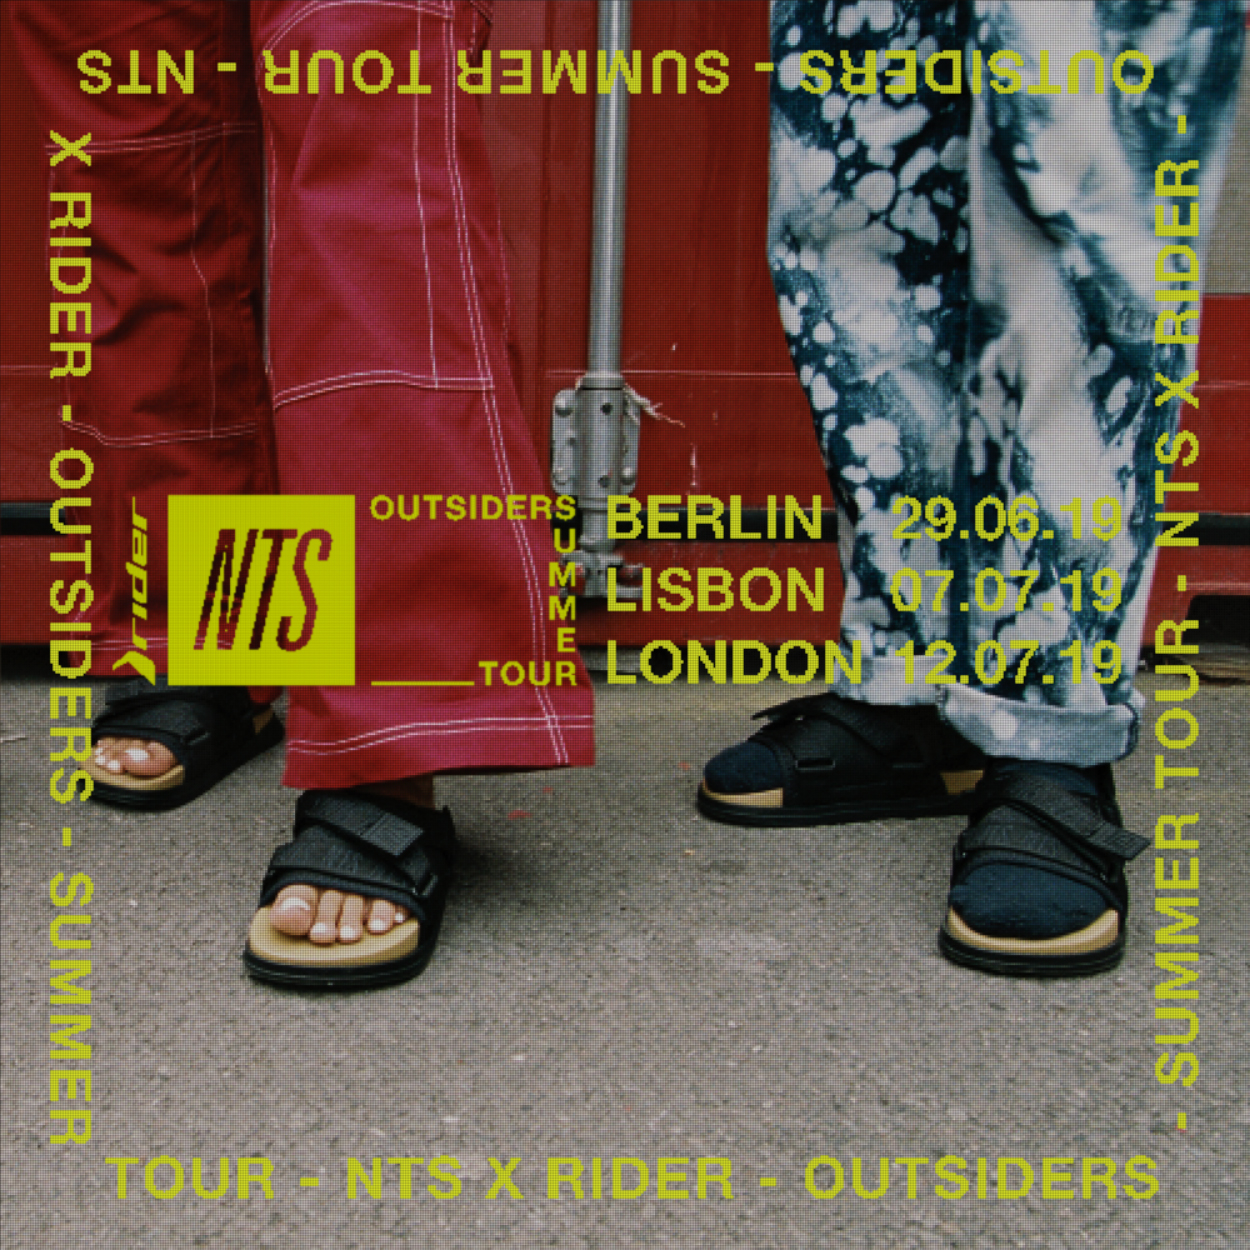 Square Still - Announcement - NTS x Rider Outsiders Tour.jpg